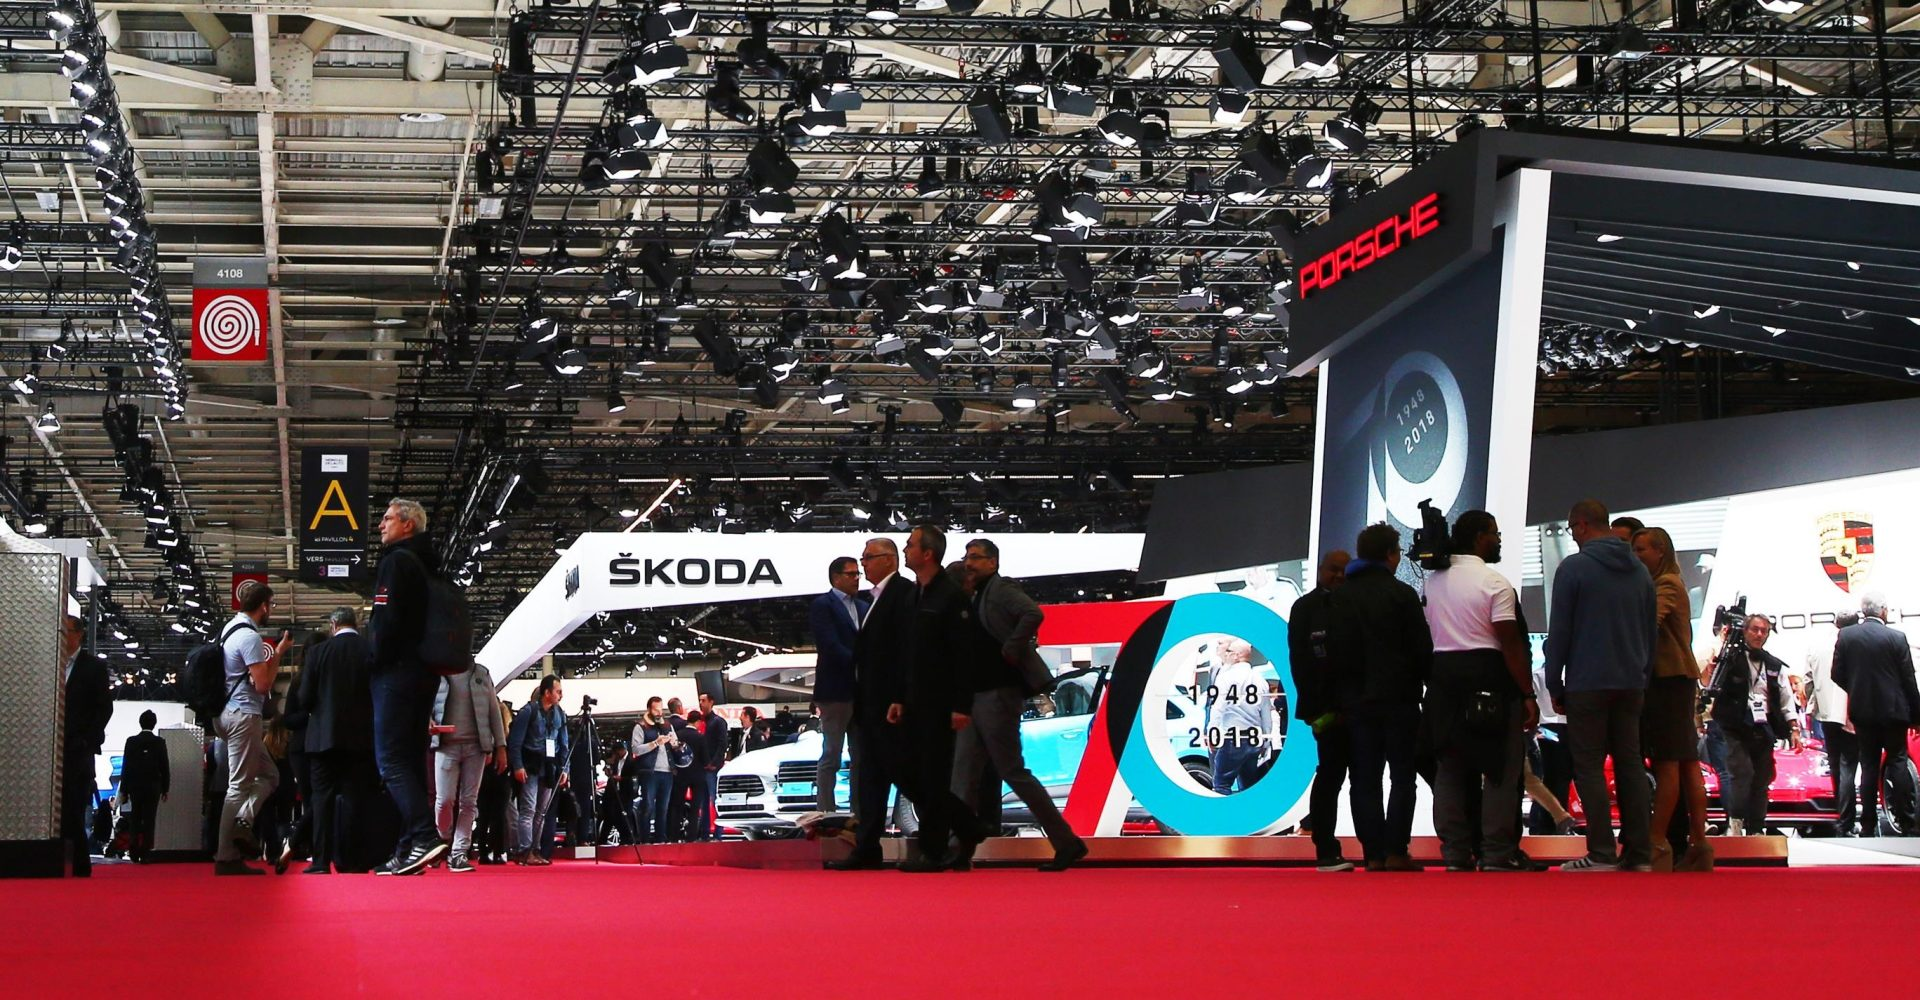 Paris Motor Show cancelled due to coronavirus